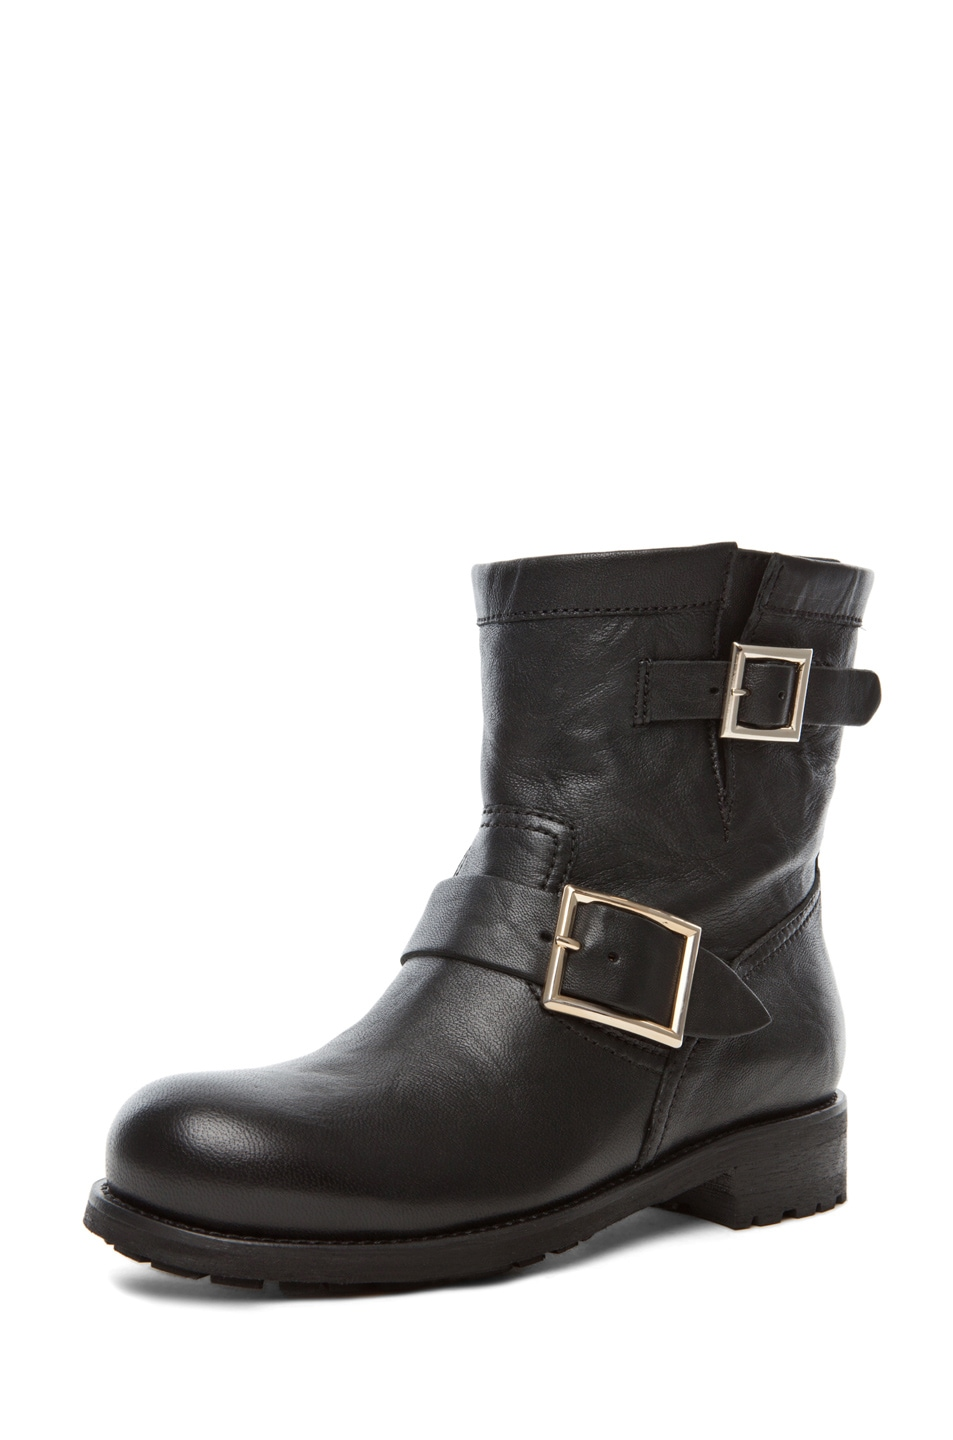 Image 2 of Jimmy Choo Youth Low Biker Boot in Black